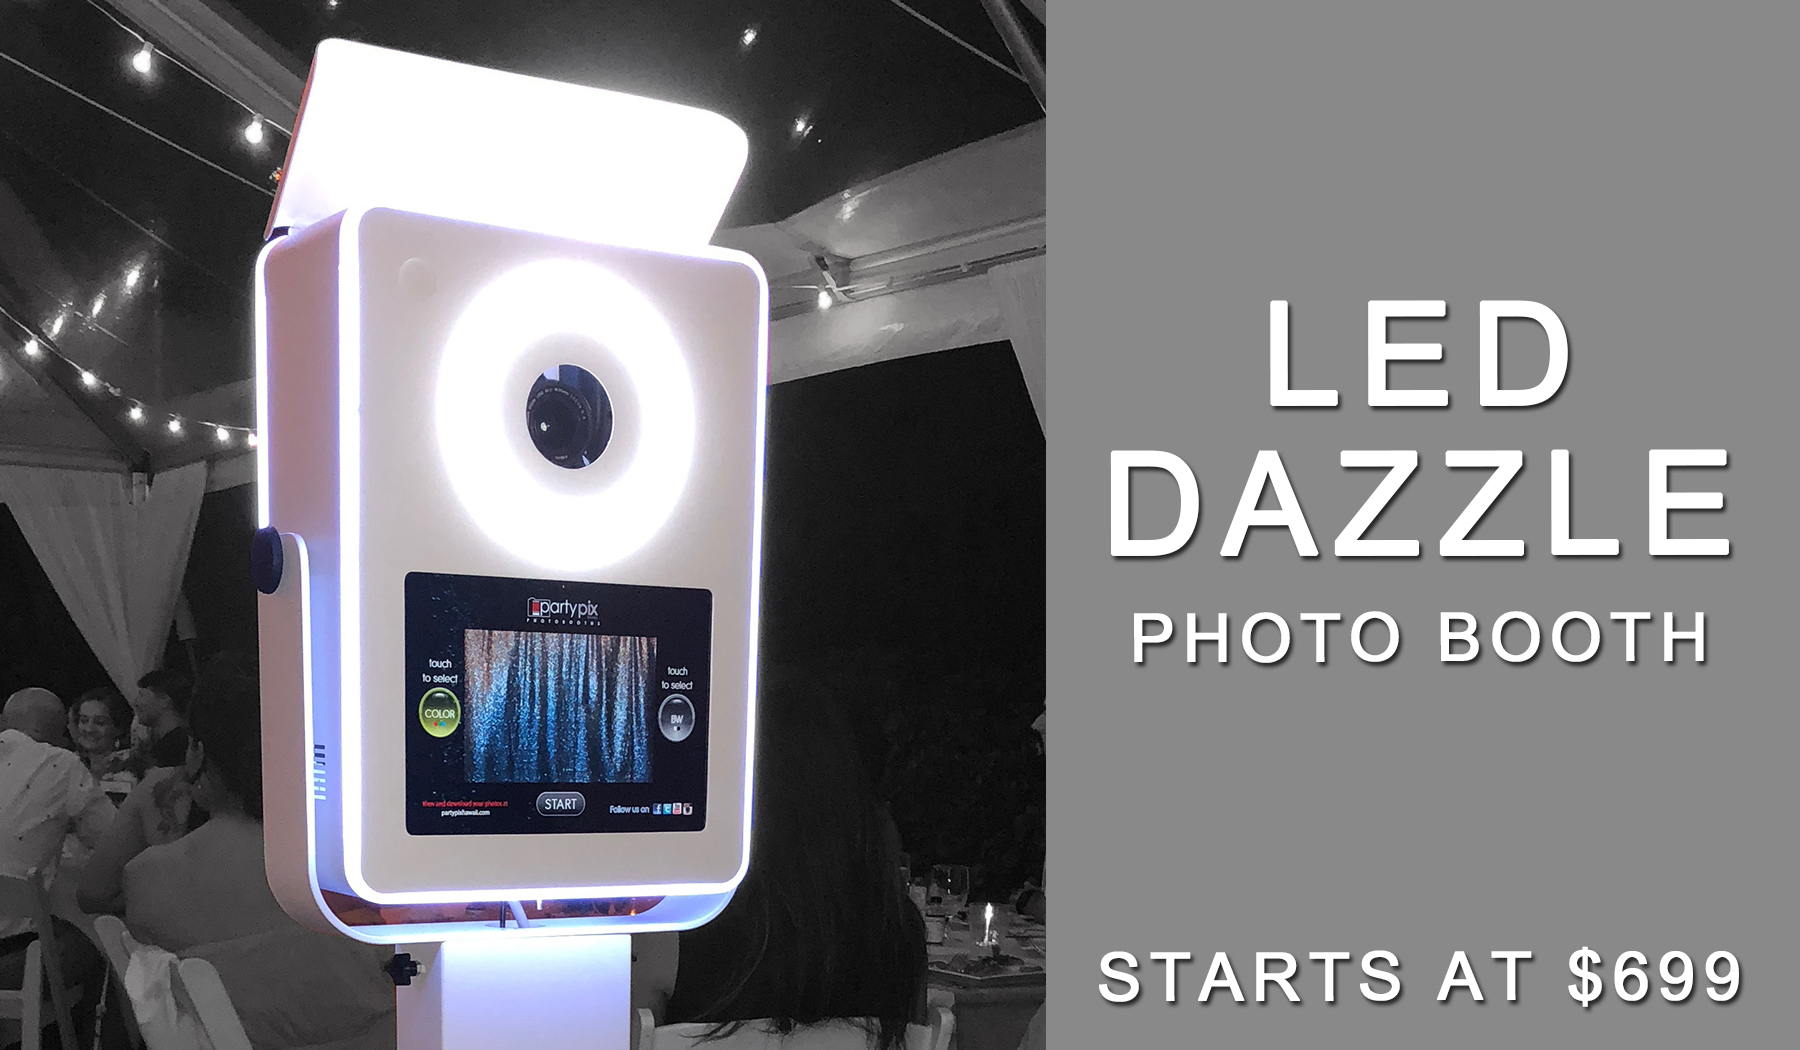 LED Dazzle Photo Booth